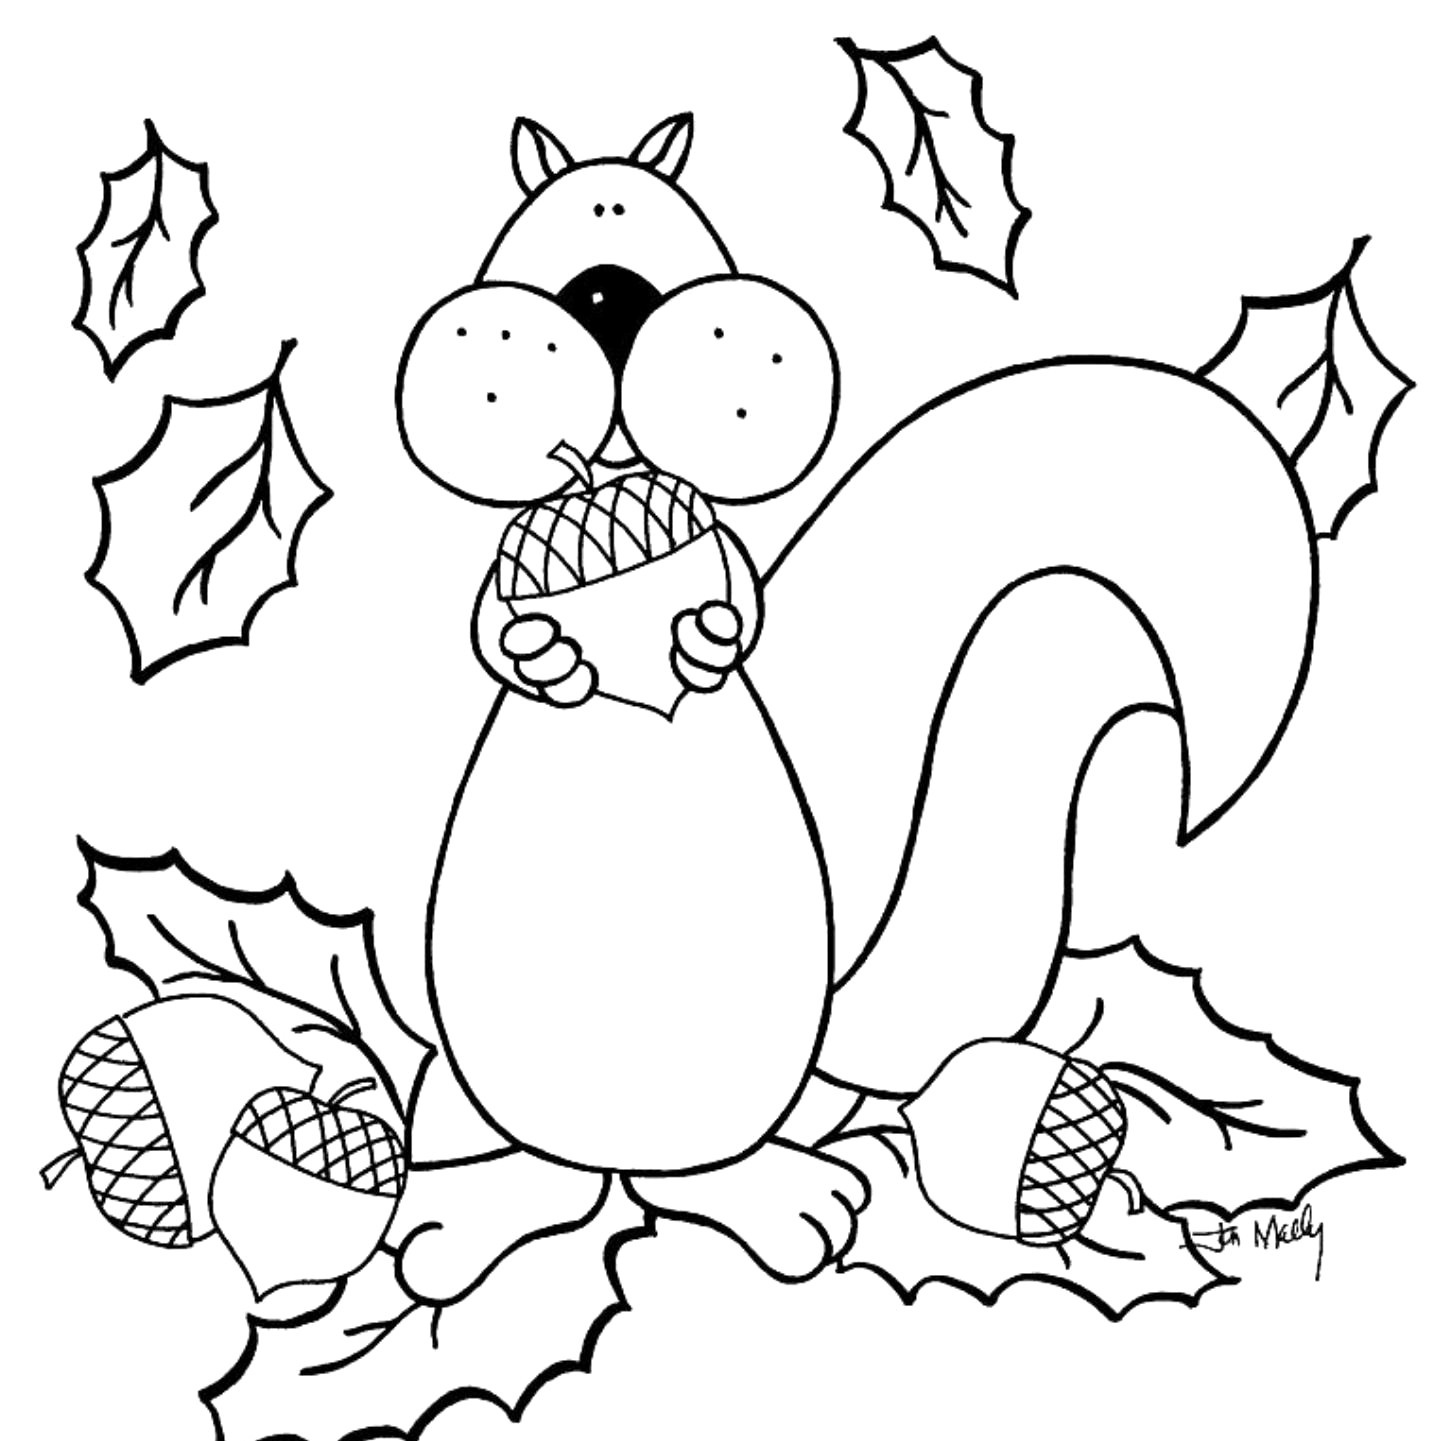 Free Printable Fall Coloring Pages For Kids - Best Coloring Pages - Free Fall Printable Coloring Sheets